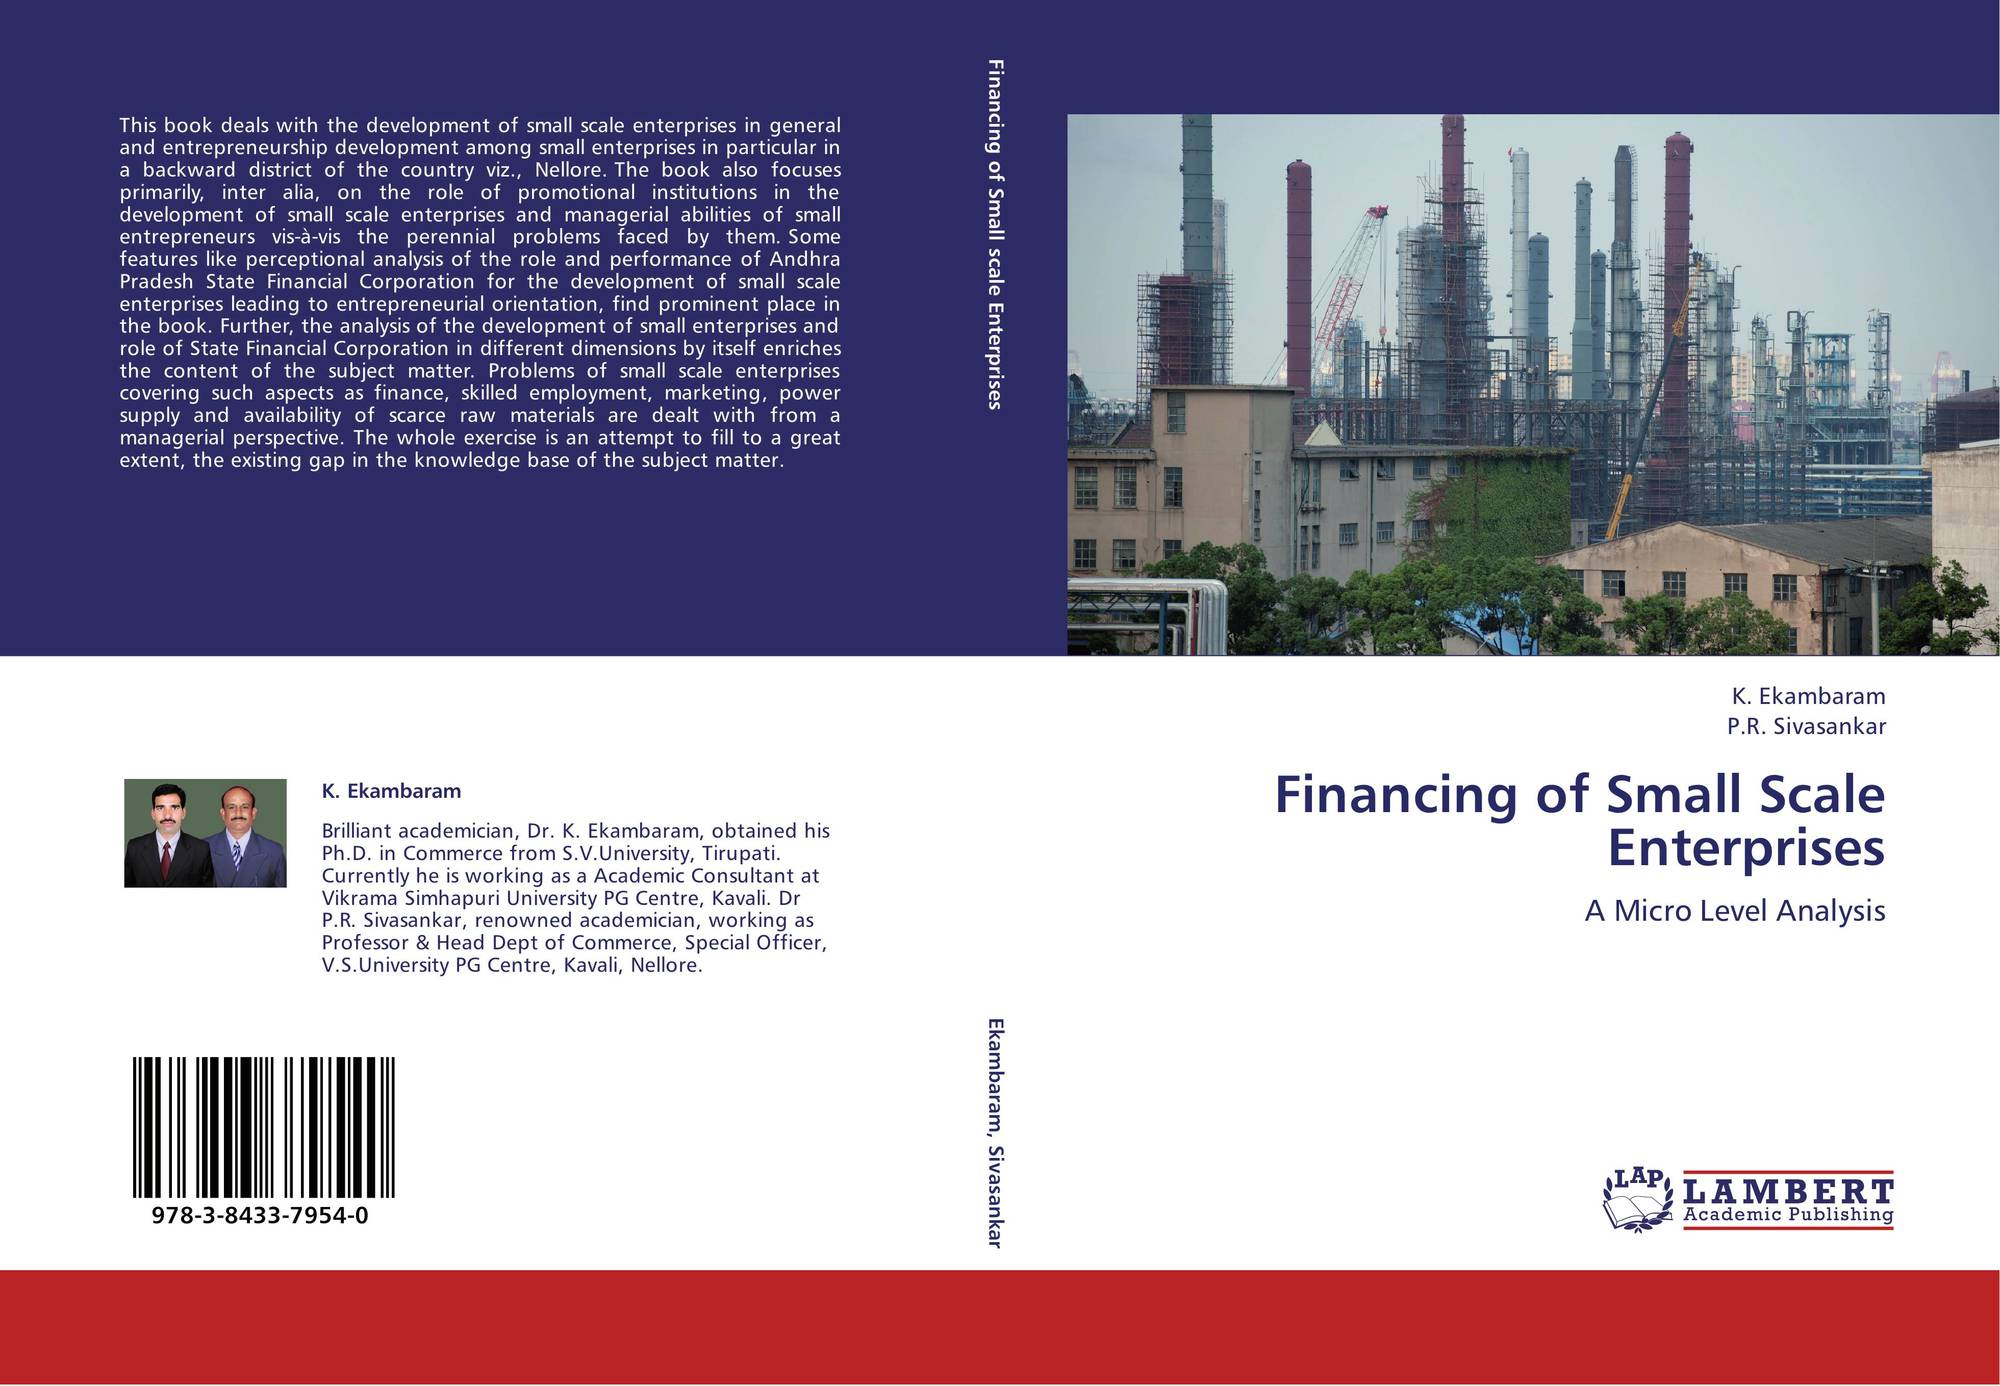 small scale enterprises essay The main objective of the reservation policy has been to insulate the small sector, or say, micro and small enterprises from unequal competition of large- scale industrial establishments, so that the sector can grow through expansion of existing units and the entry of new firms.